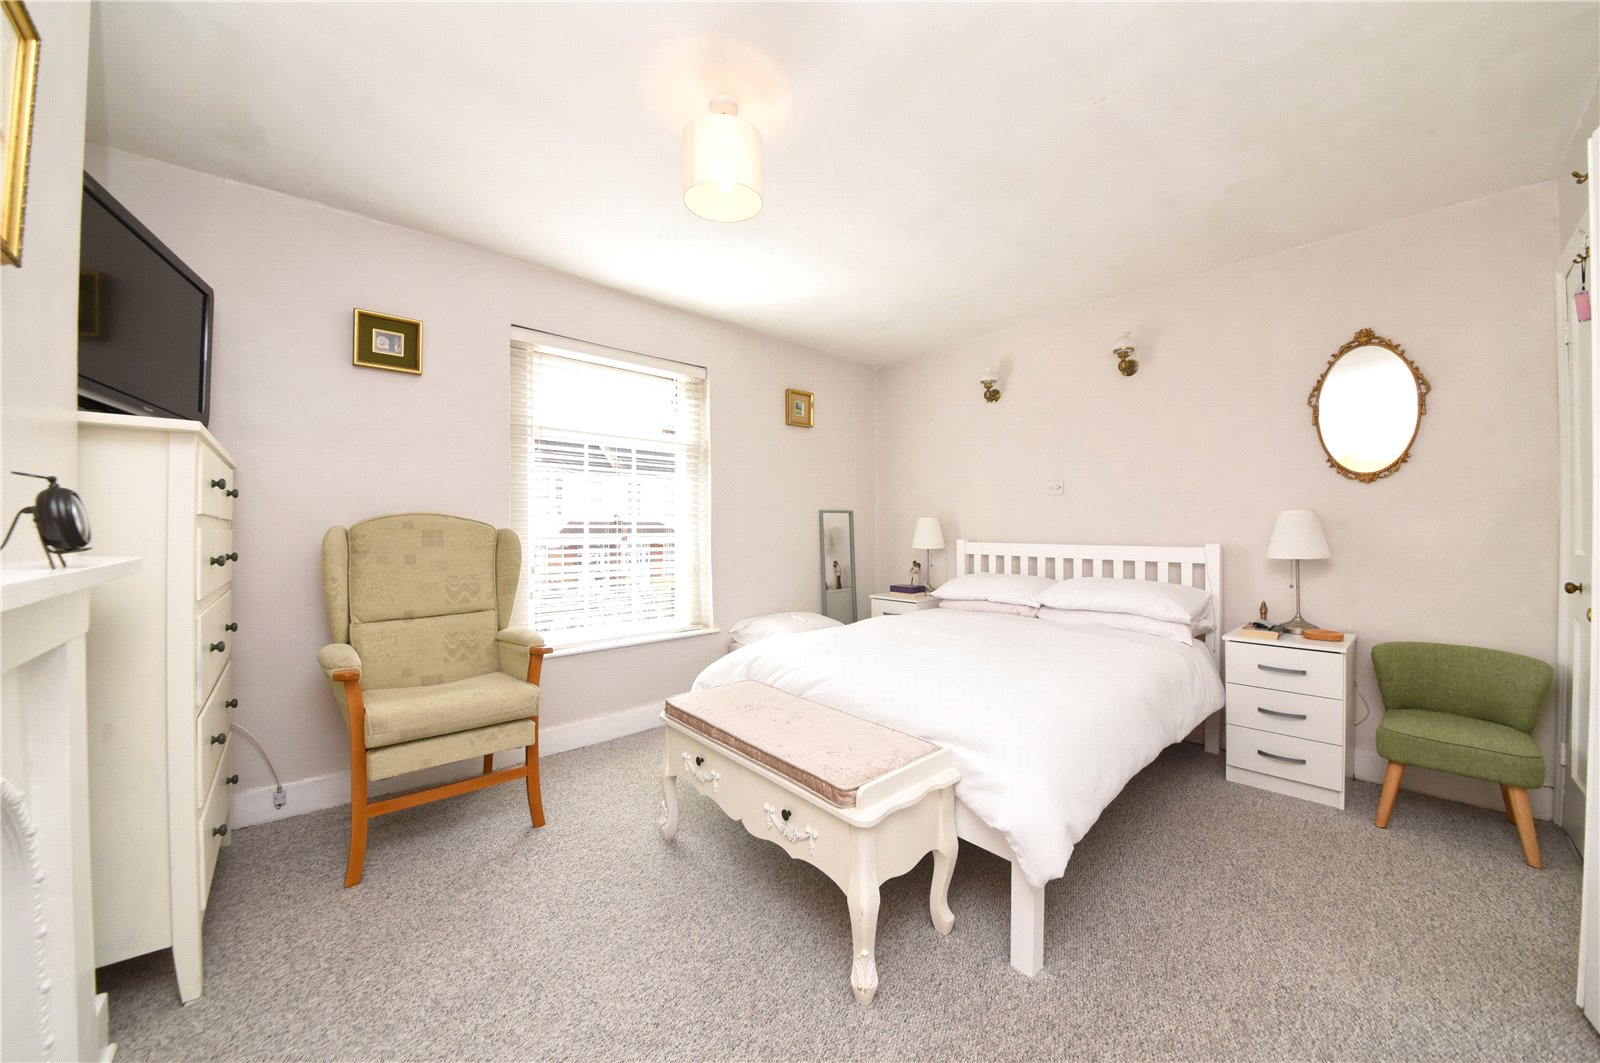 2 bed house for sale in London, N12 9JN  - Property Image 5